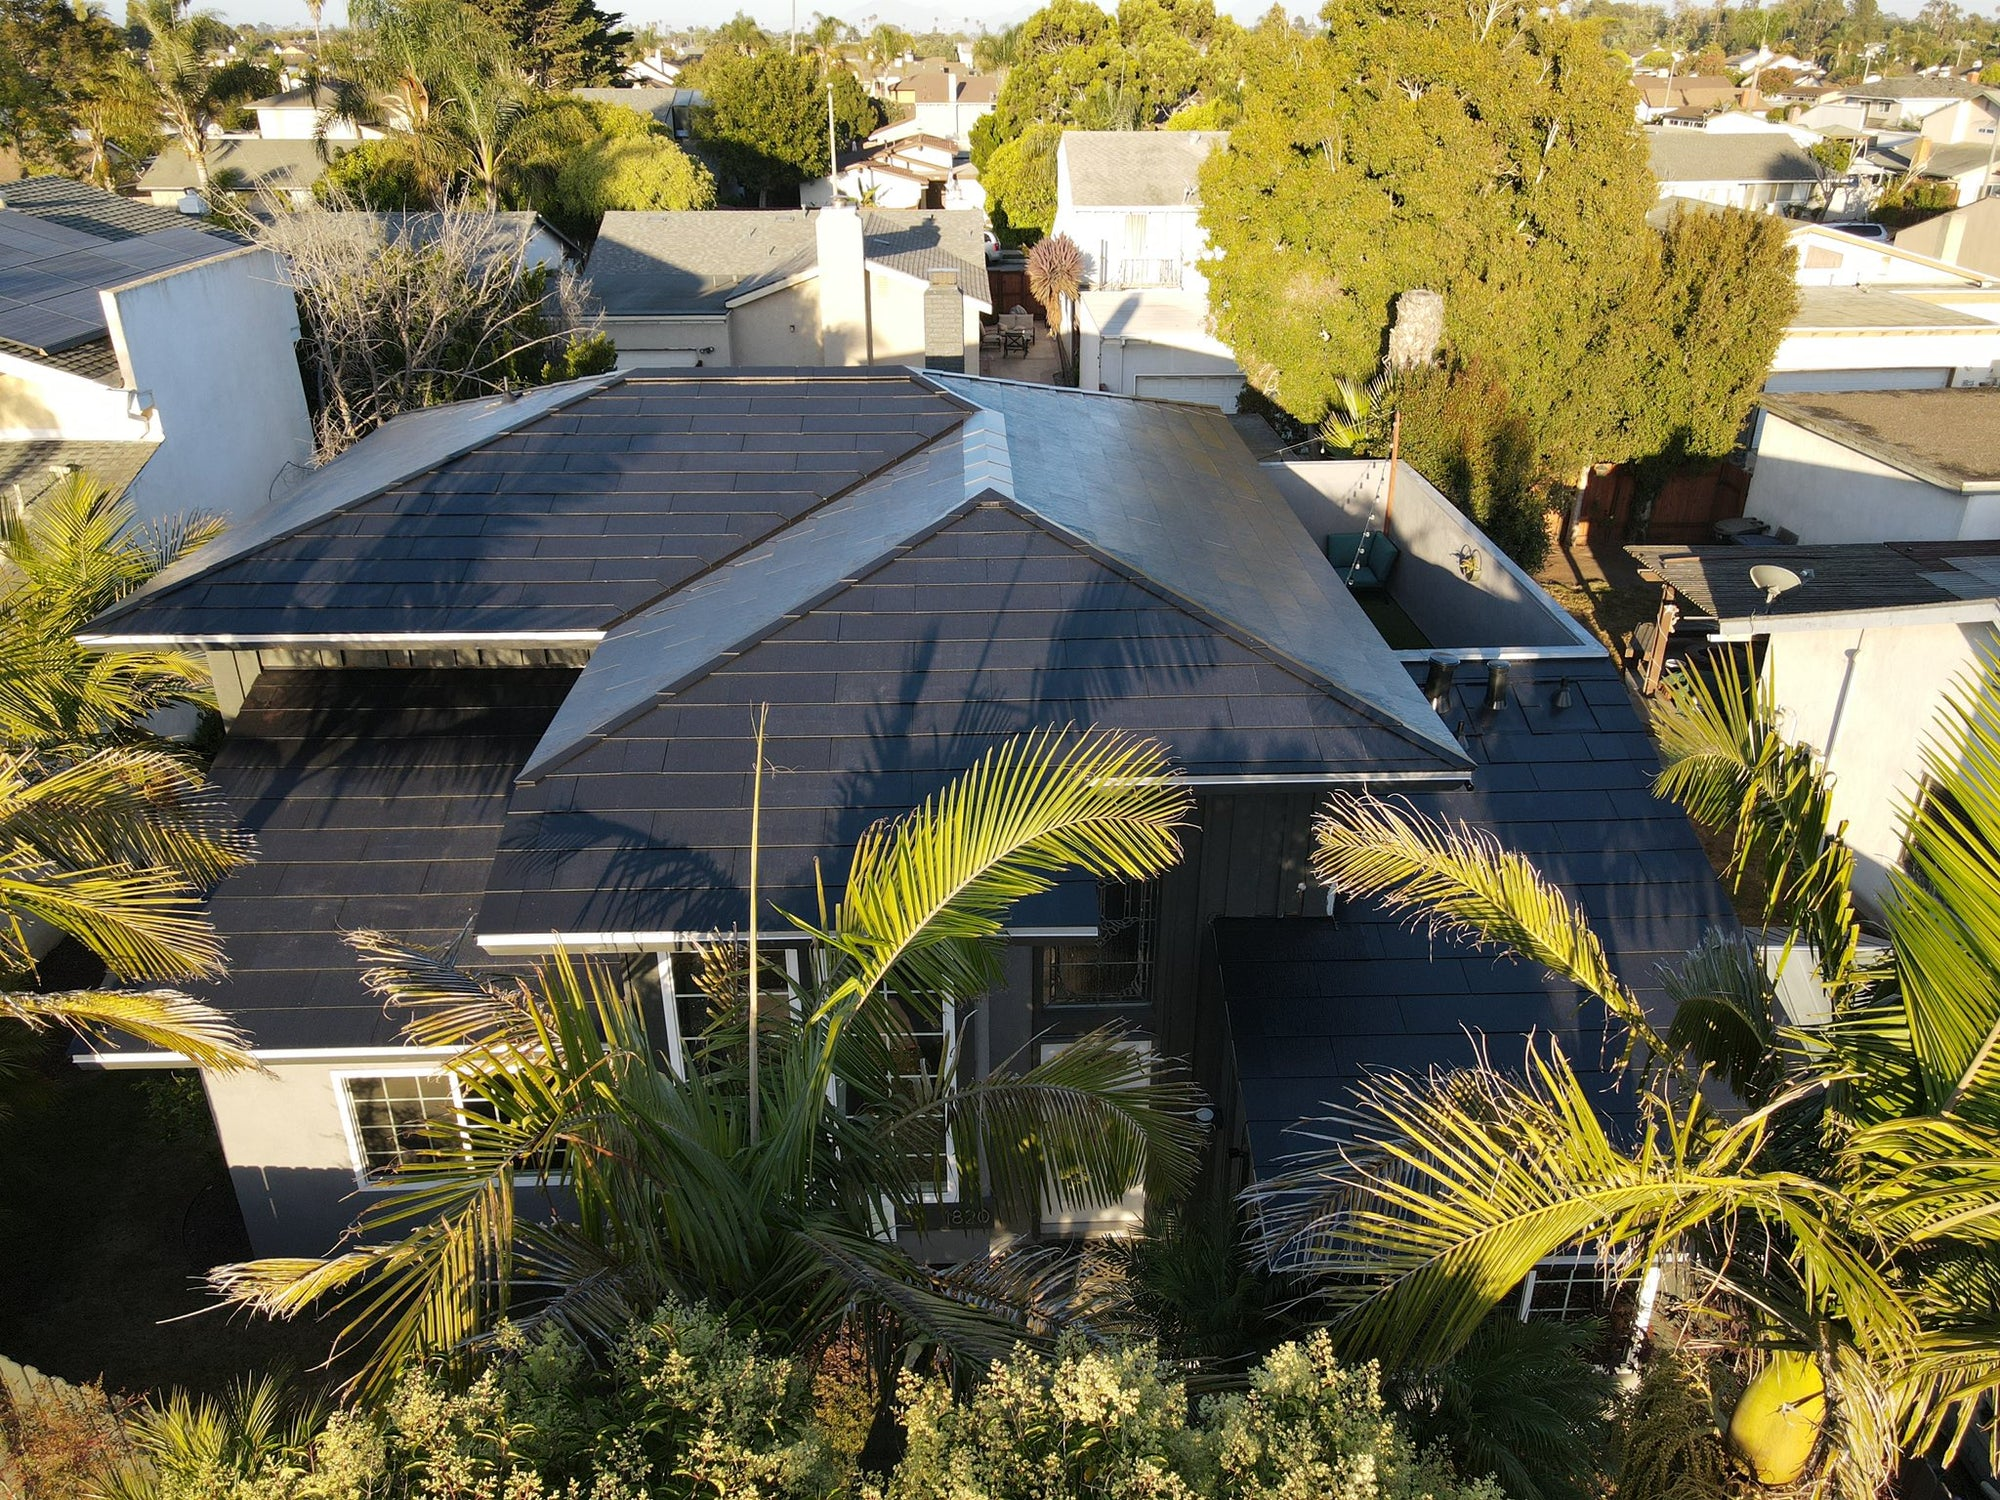 Tesla Solar Roof Owner Shares Incredible Price of Newly Installed System